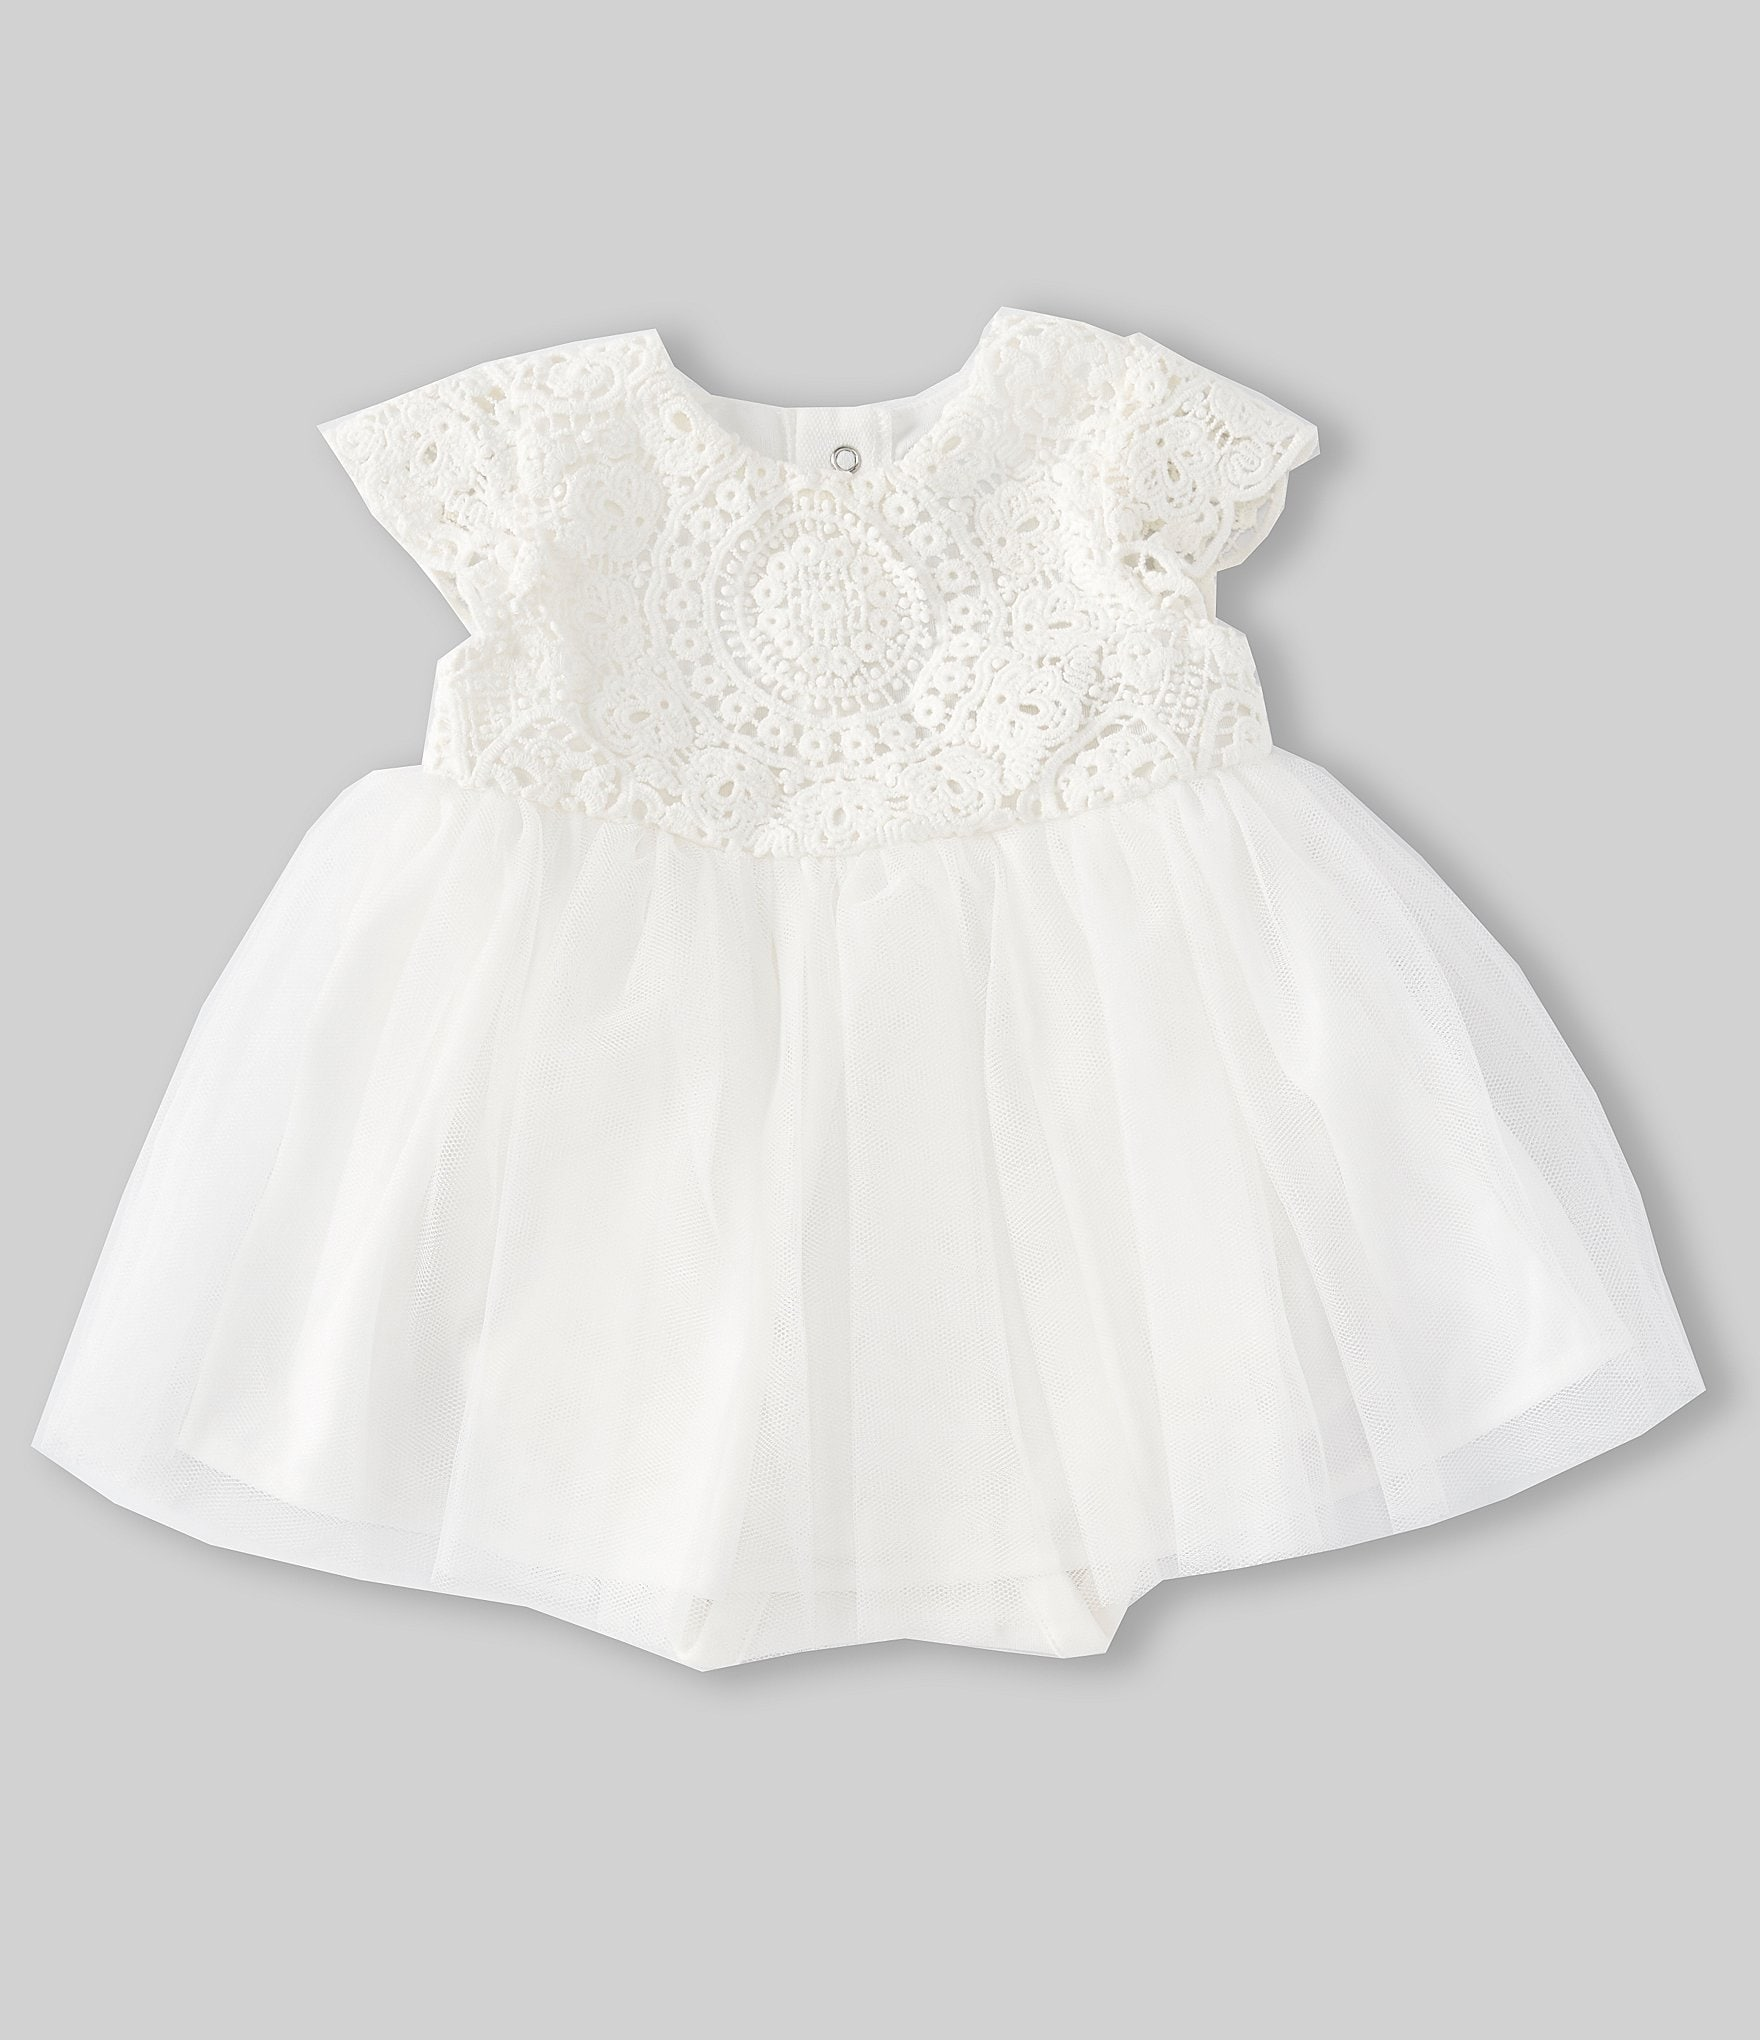 a74fda180 Baby Girl Clothing | Dillard's